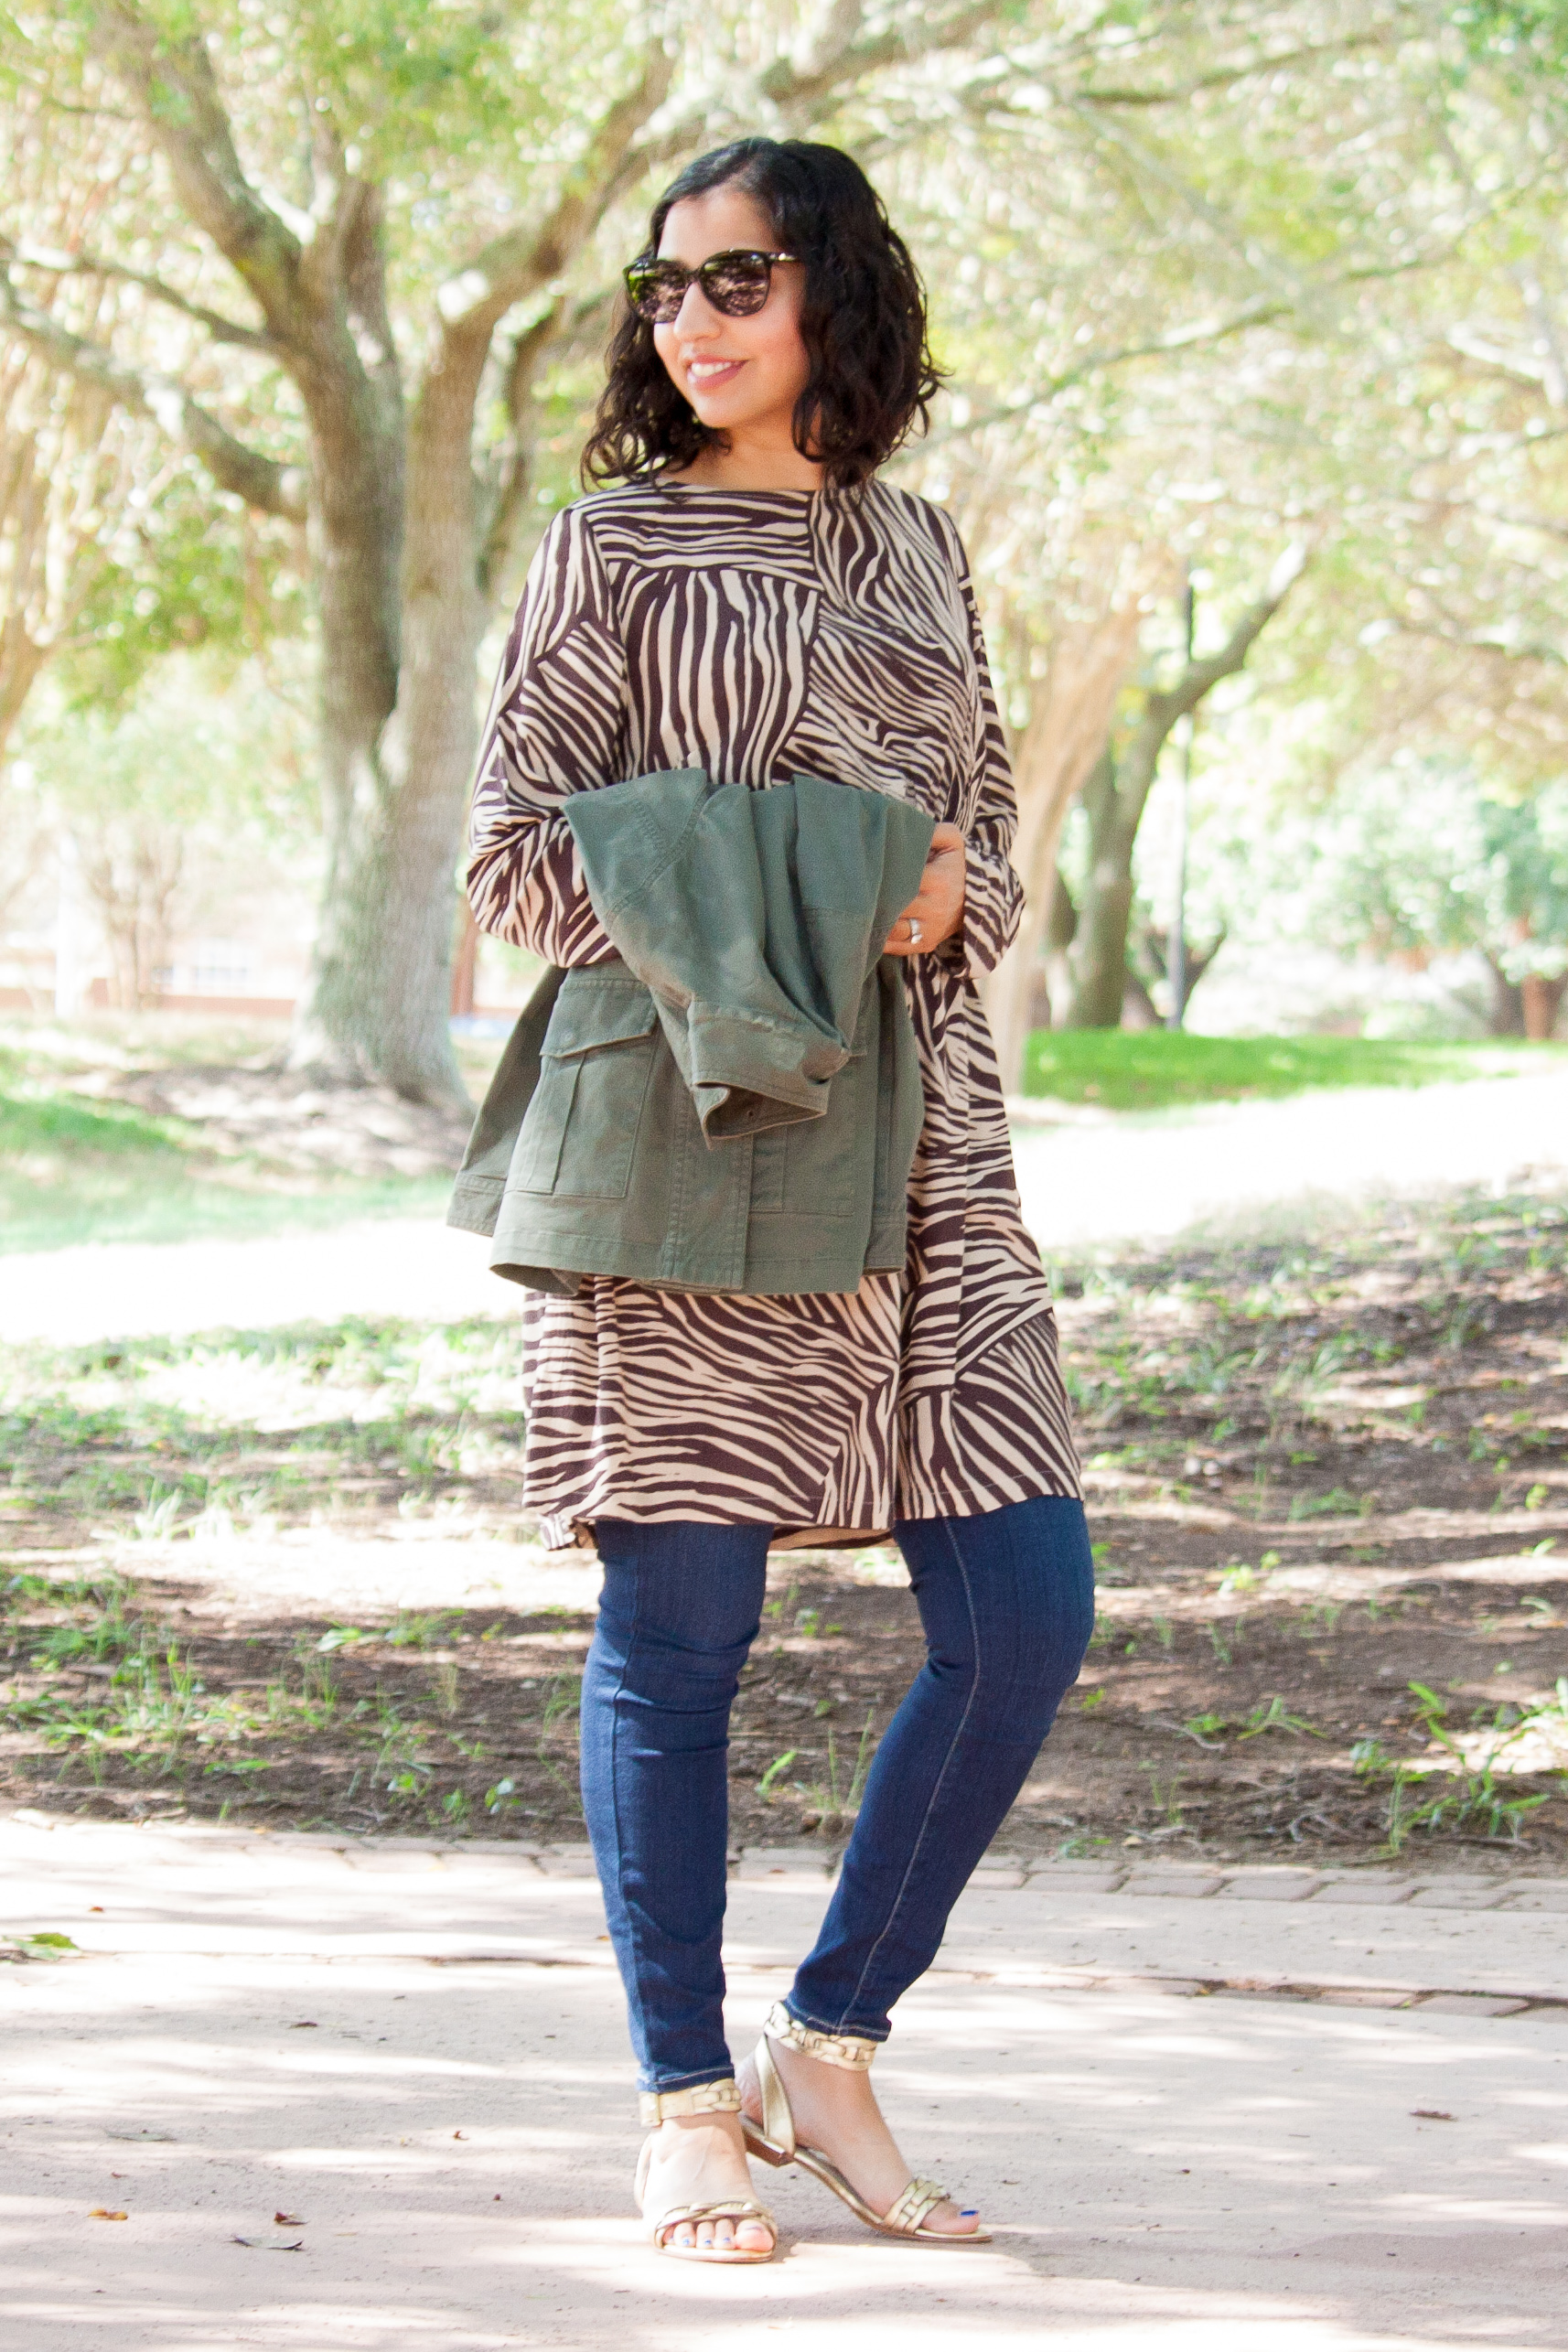 zebra print dress over jeans